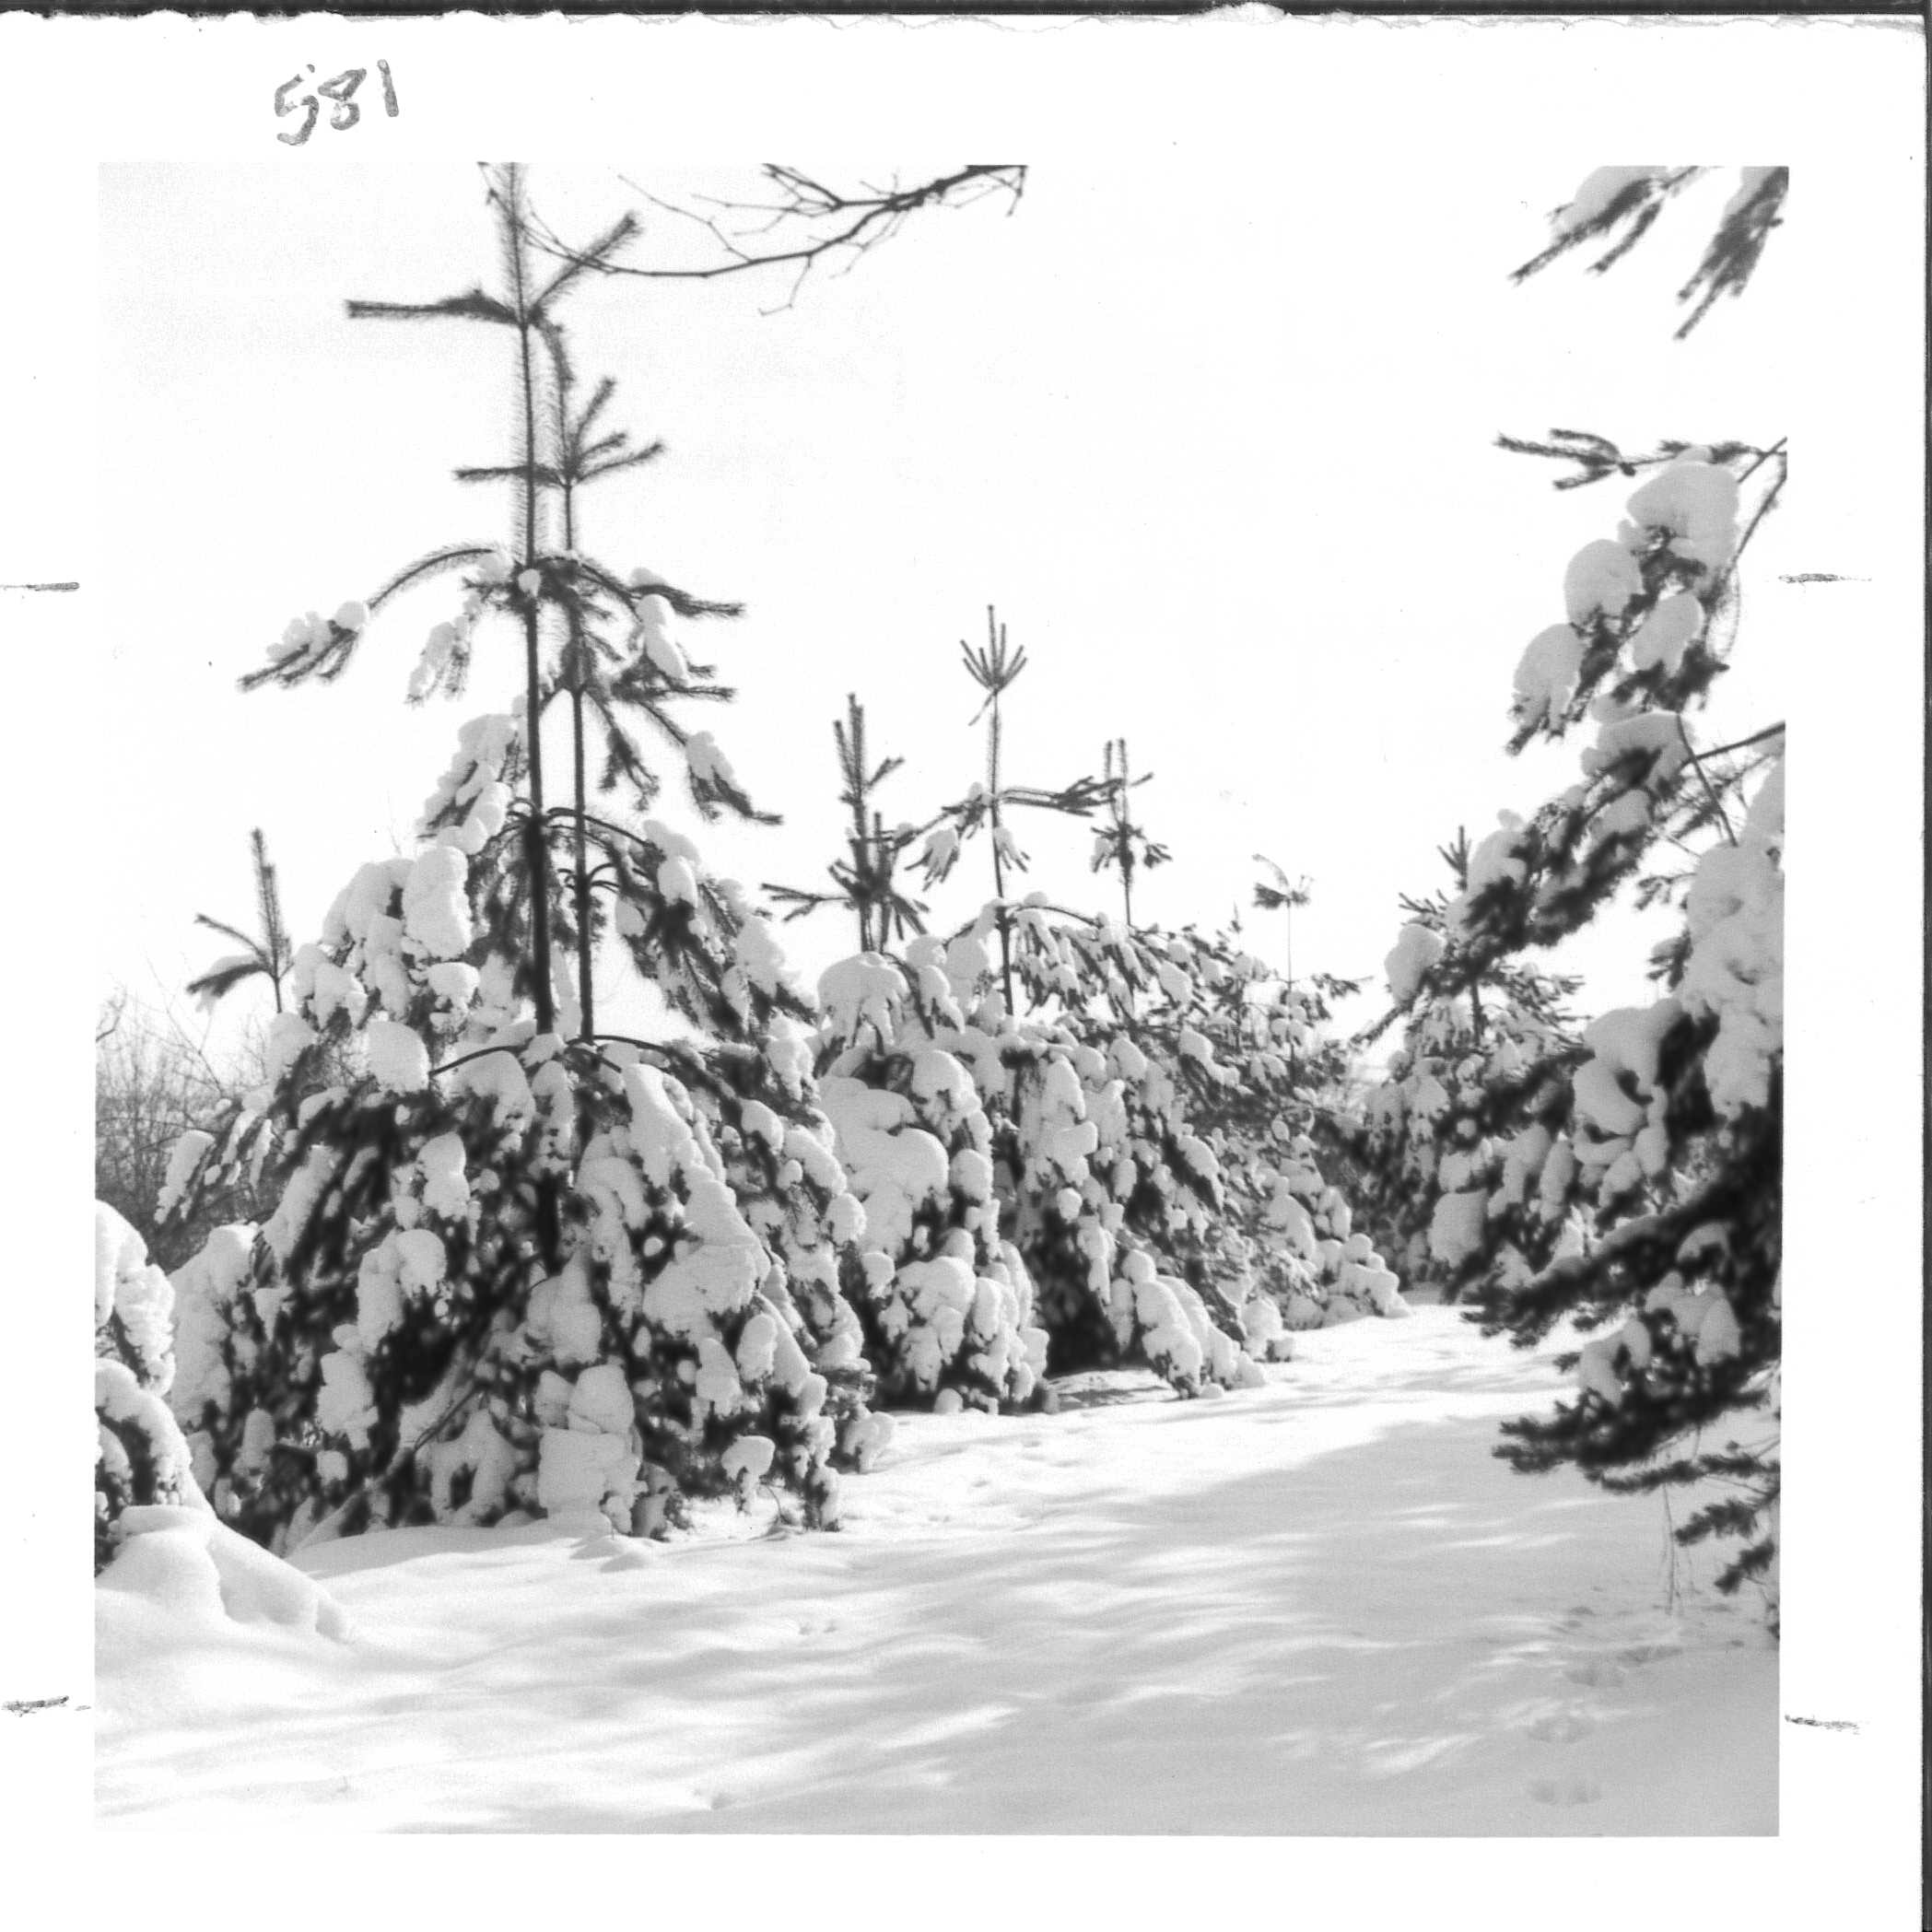 During the early years of the project, aspen and white pines performed the best. White pines like these grew three feet per year. Albert Miller Papers and Photographs, MSS 1095, Meadowcroft Rockshelter and Historic Village.